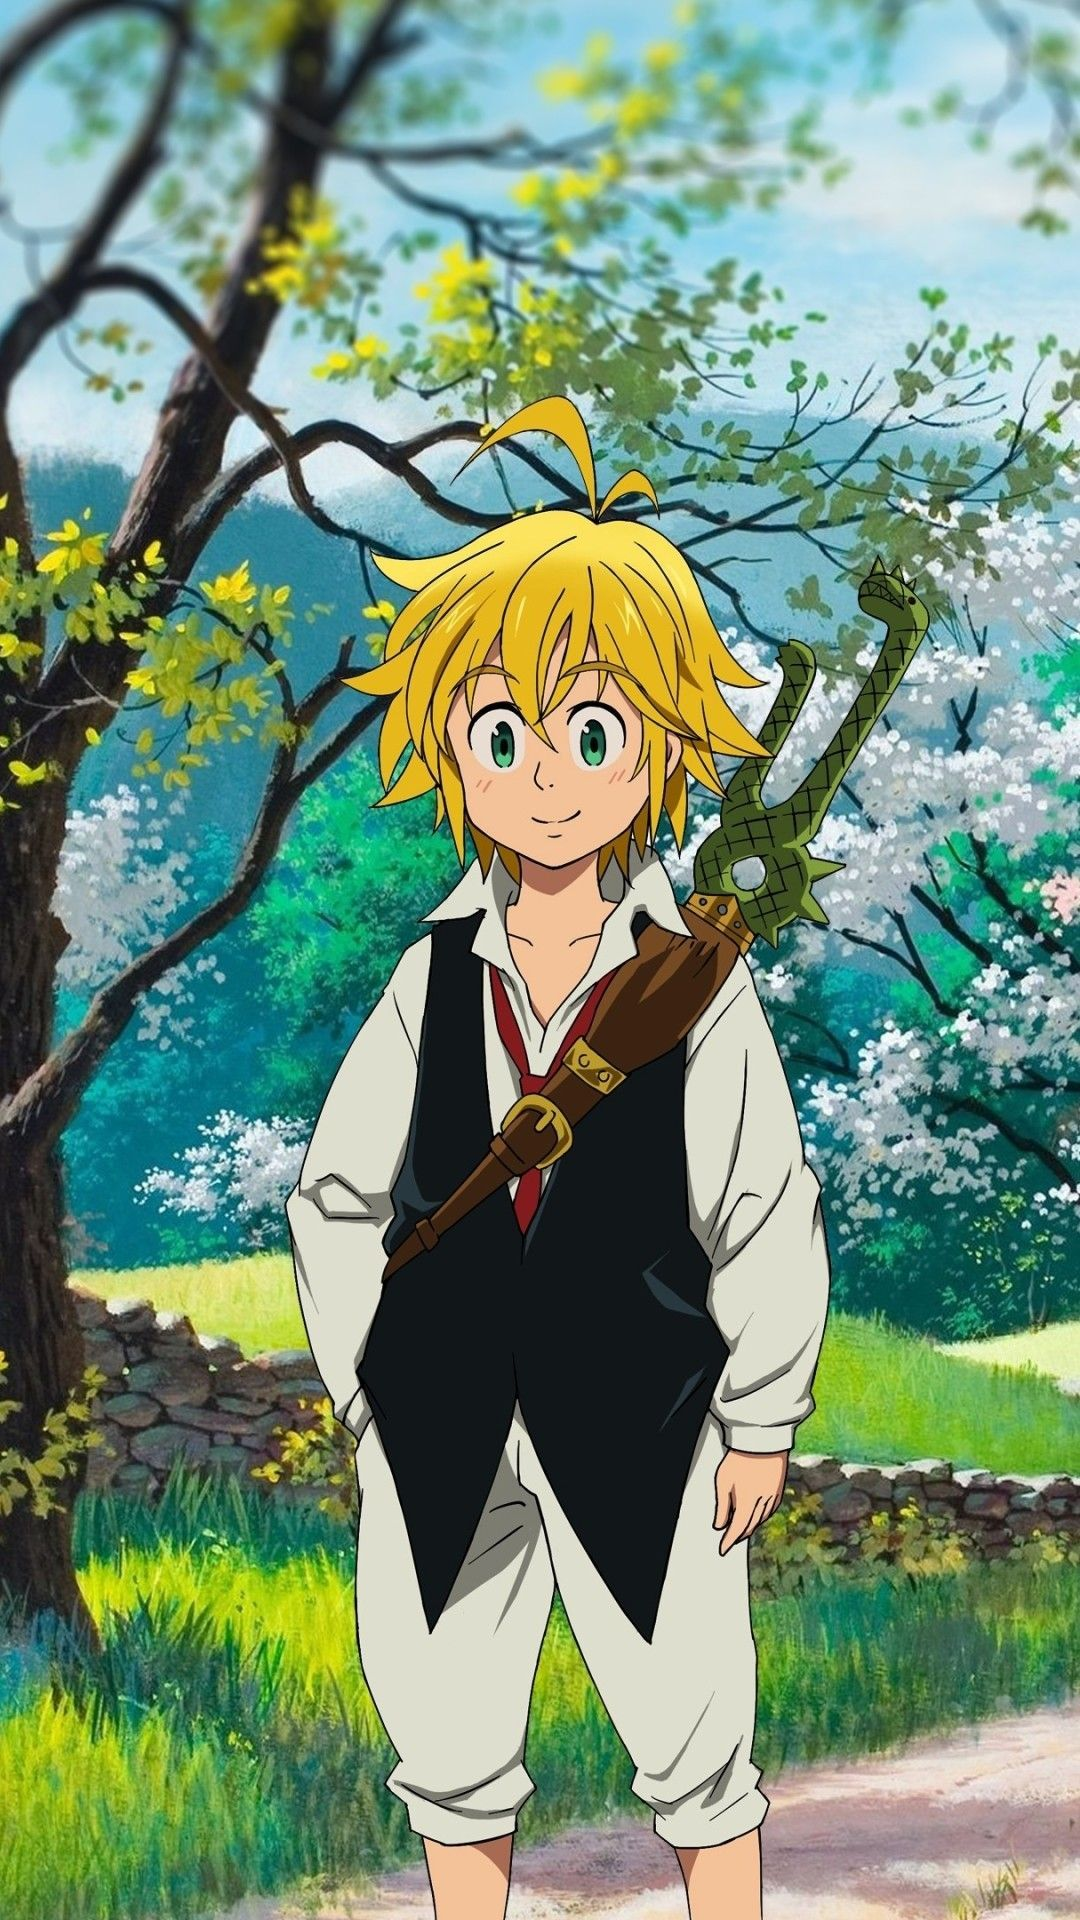 Check The Link To Download Hd Wallpapers Of The Seven Deadly Sins And More Pc Phone Anime Th Seven Deadly Sins Anime Fantasy Seven Deadly Sins Anime